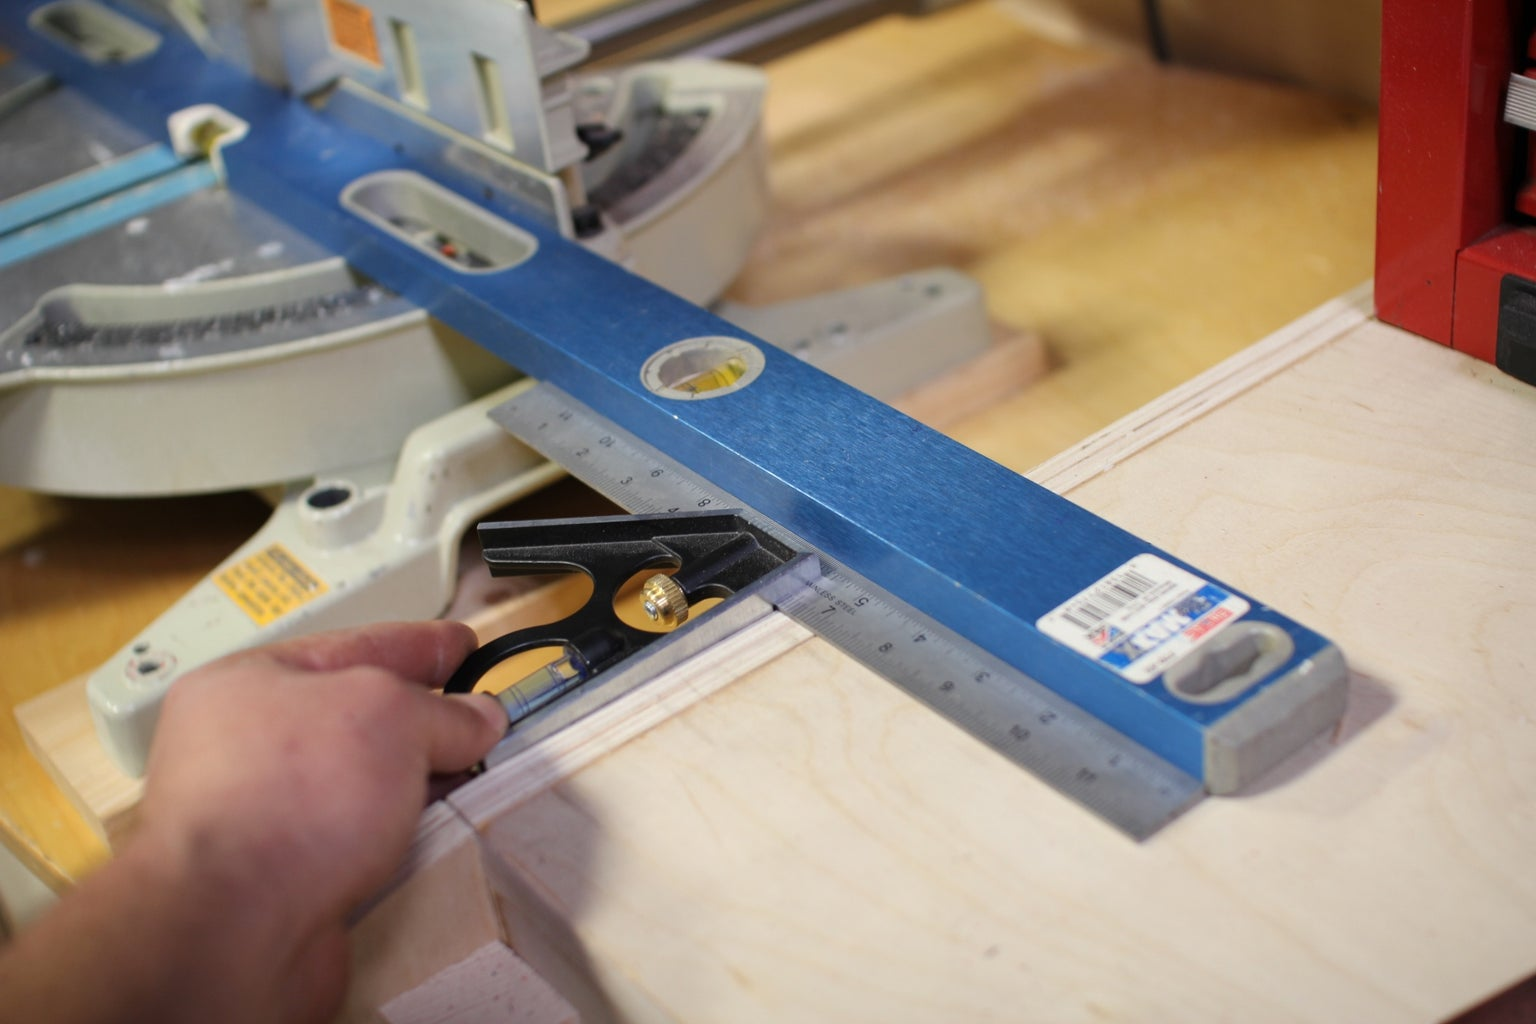 Square and Level Saw